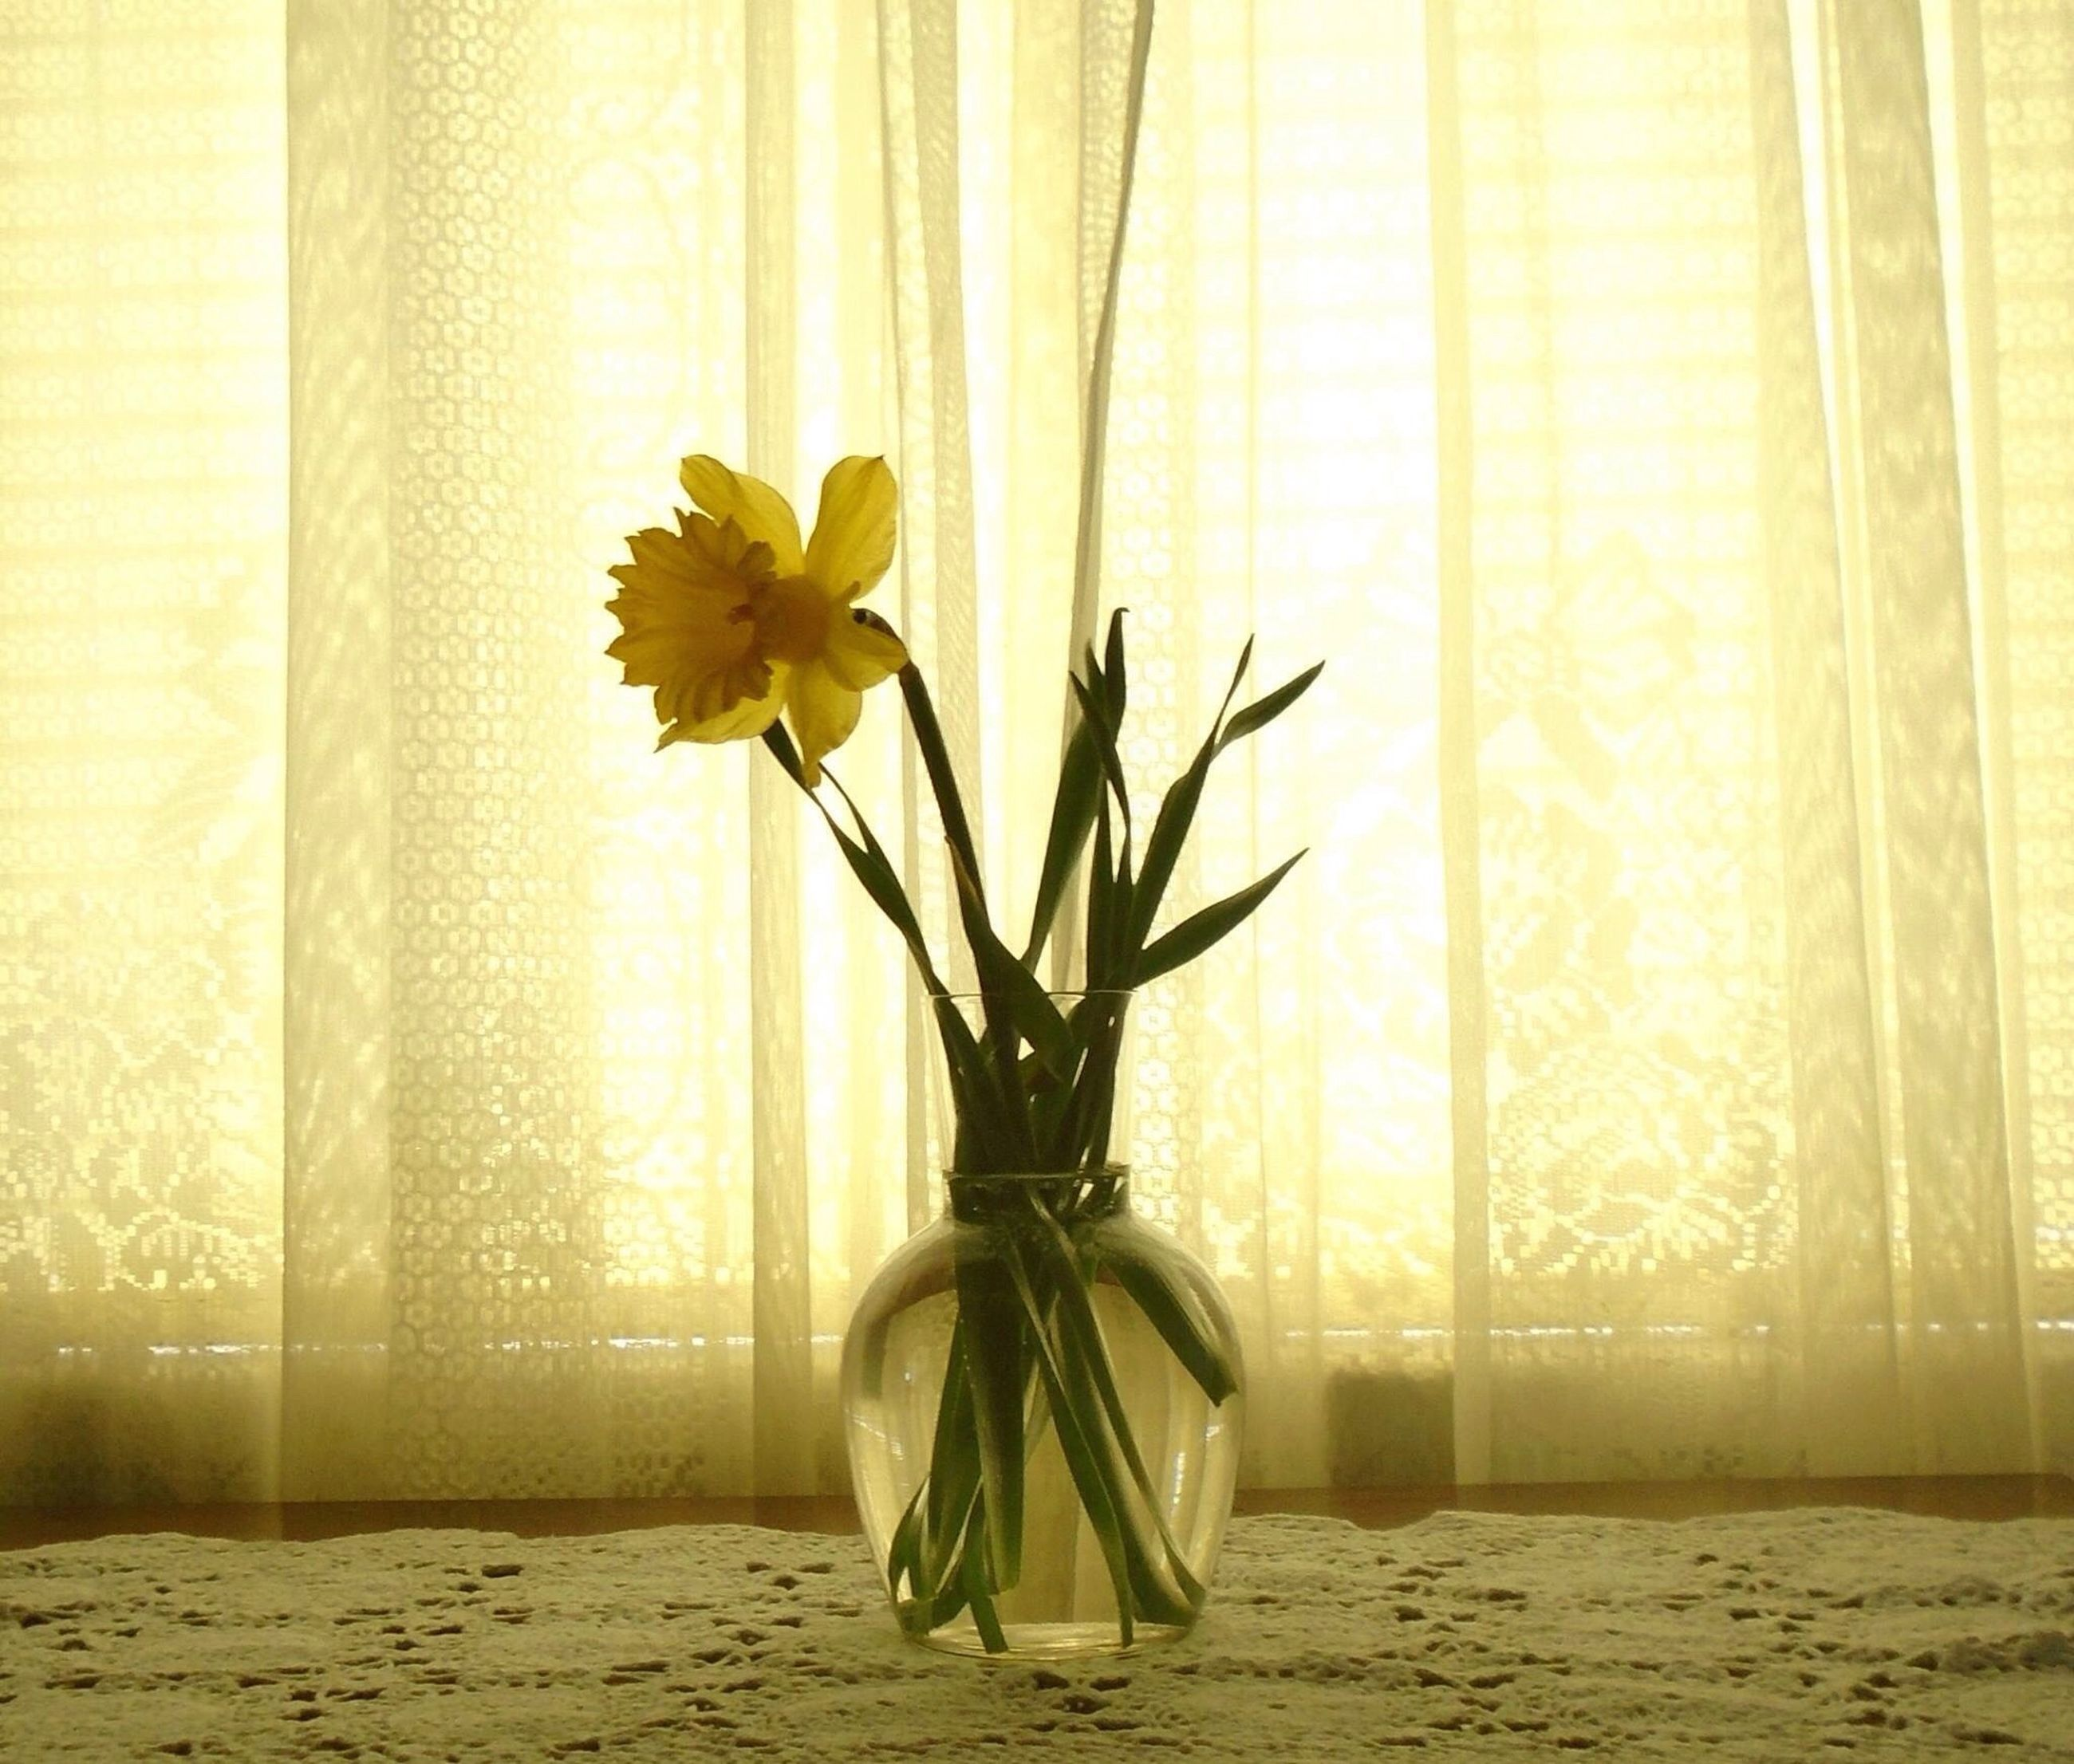 indoors, flower, vase, home interior, wall - building feature, curtain, fragility, petal, window, wall, freshness, potted plant, table, decoration, growth, yellow, flower arrangement, plant, shadow, no people